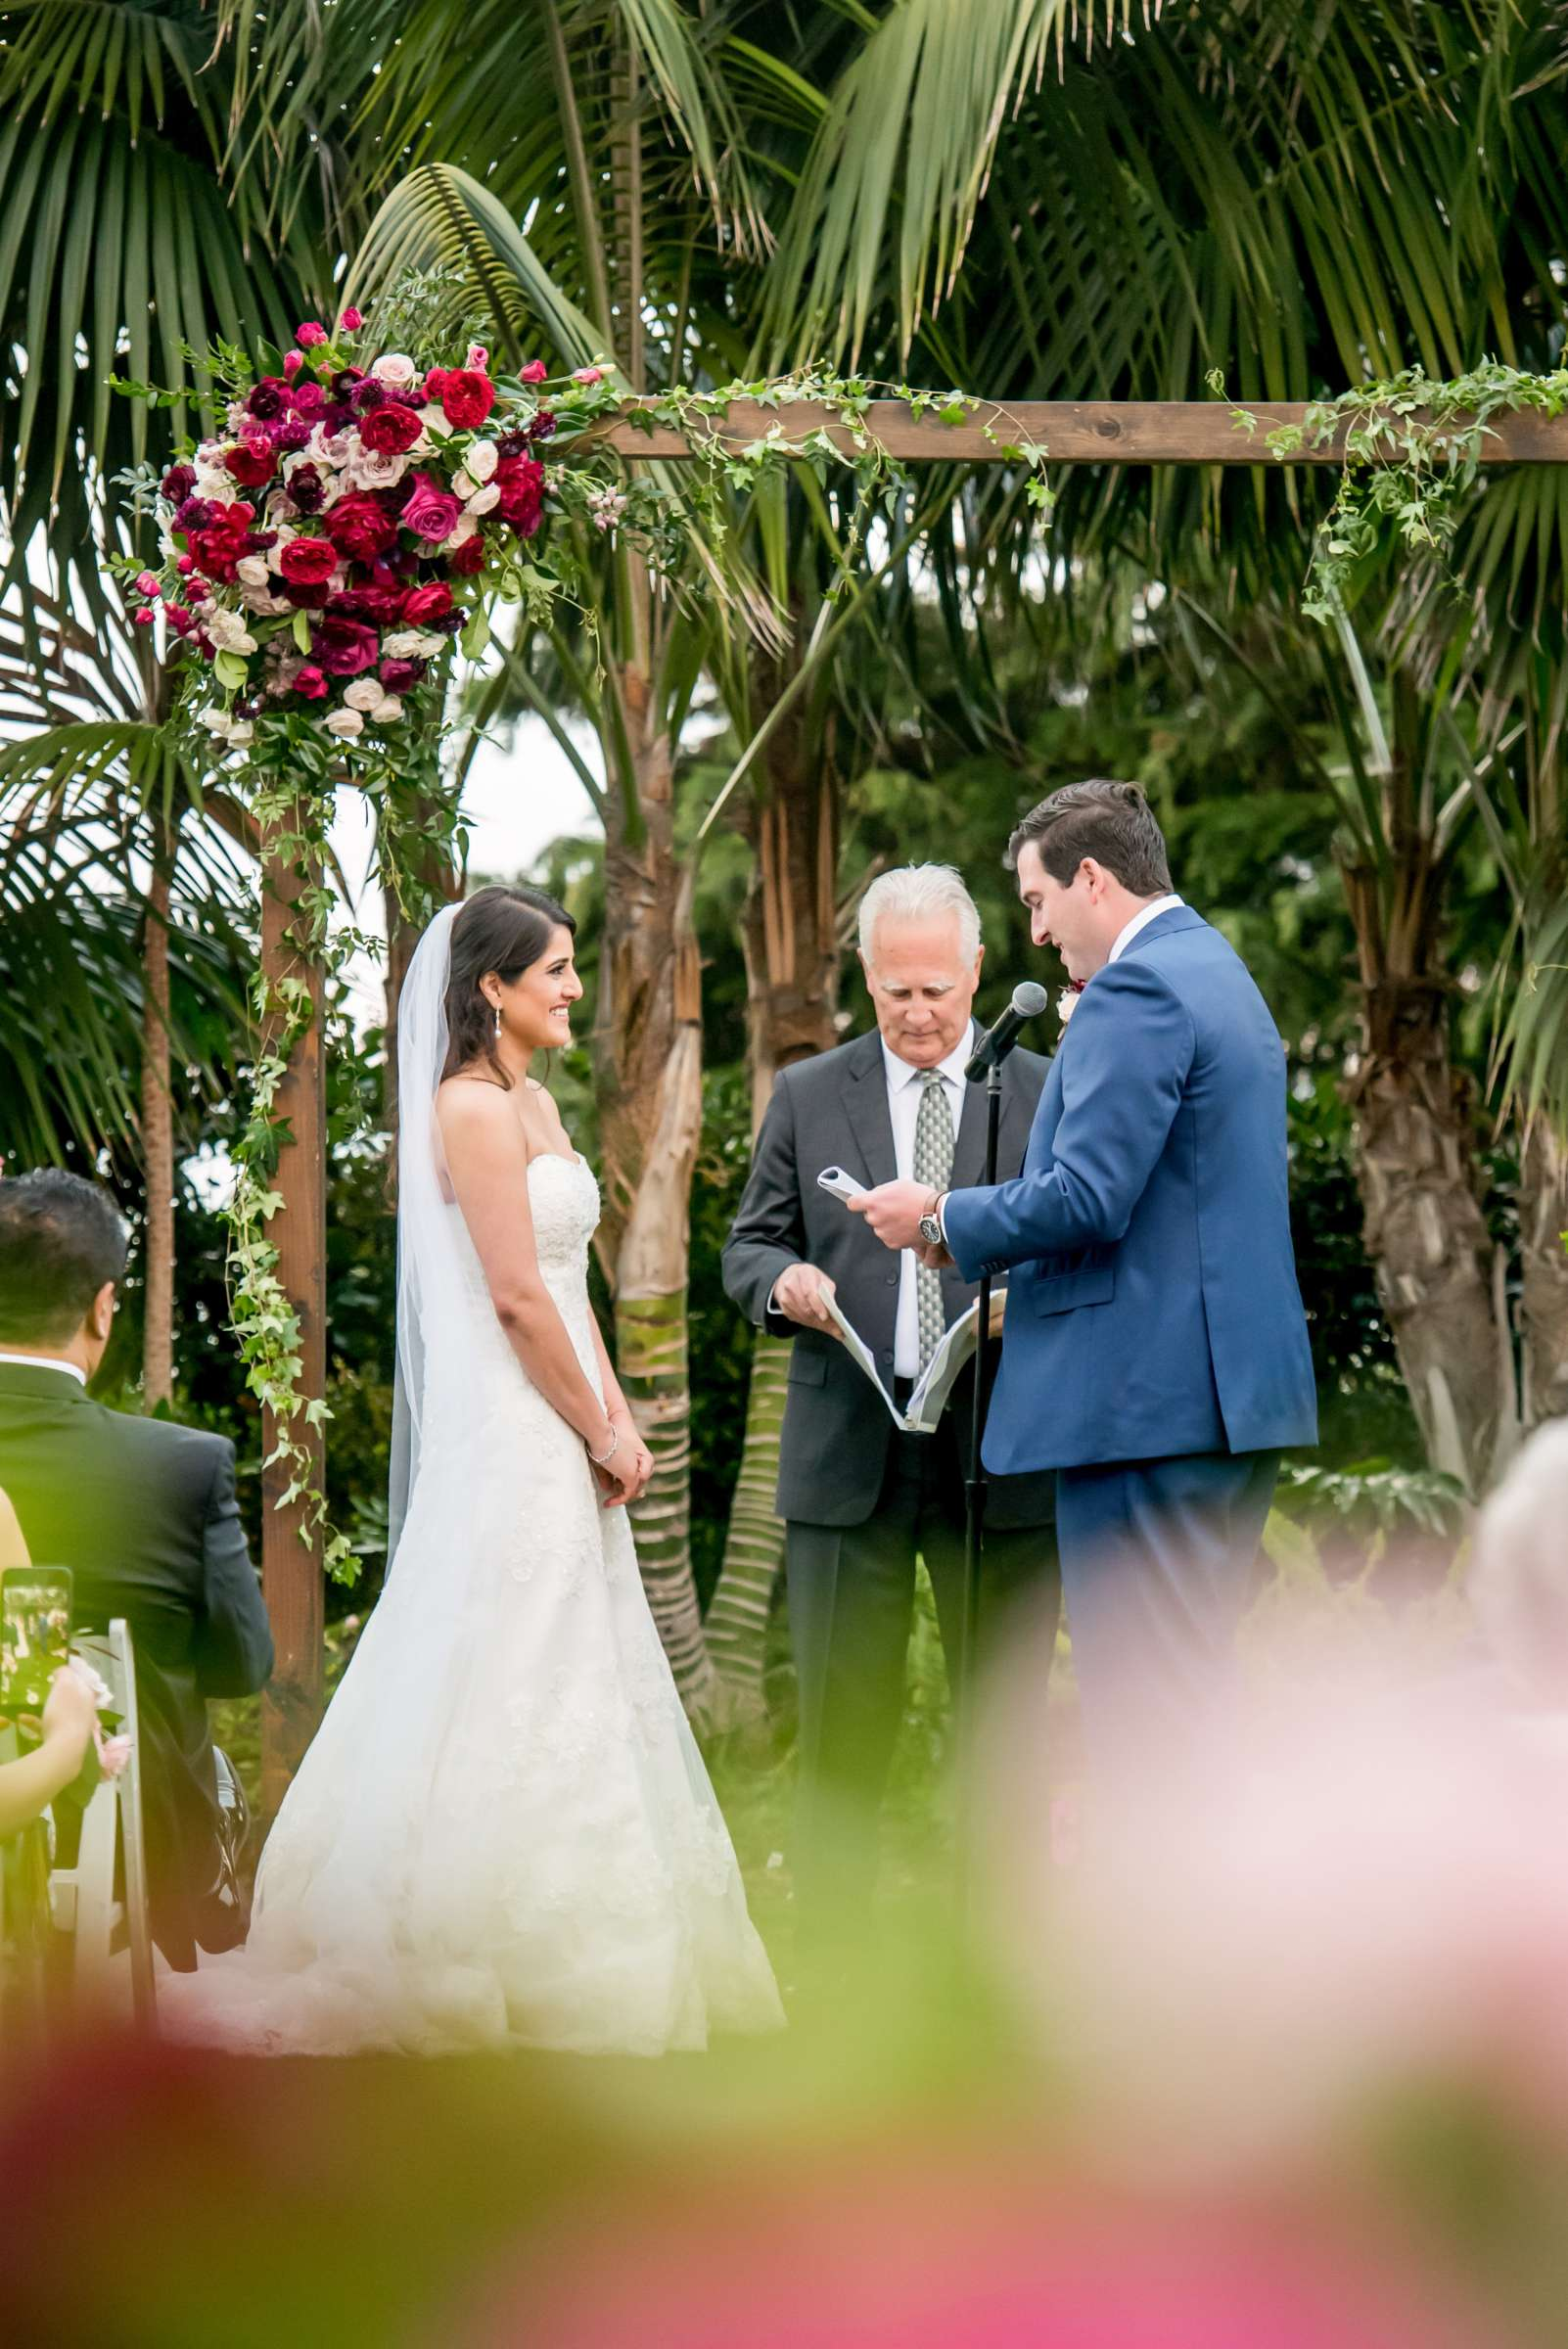 Cape Rey Carlsbad, A Hilton Resort Wedding, Jasmine and Kyle Wedding Photo #90 by True Photography